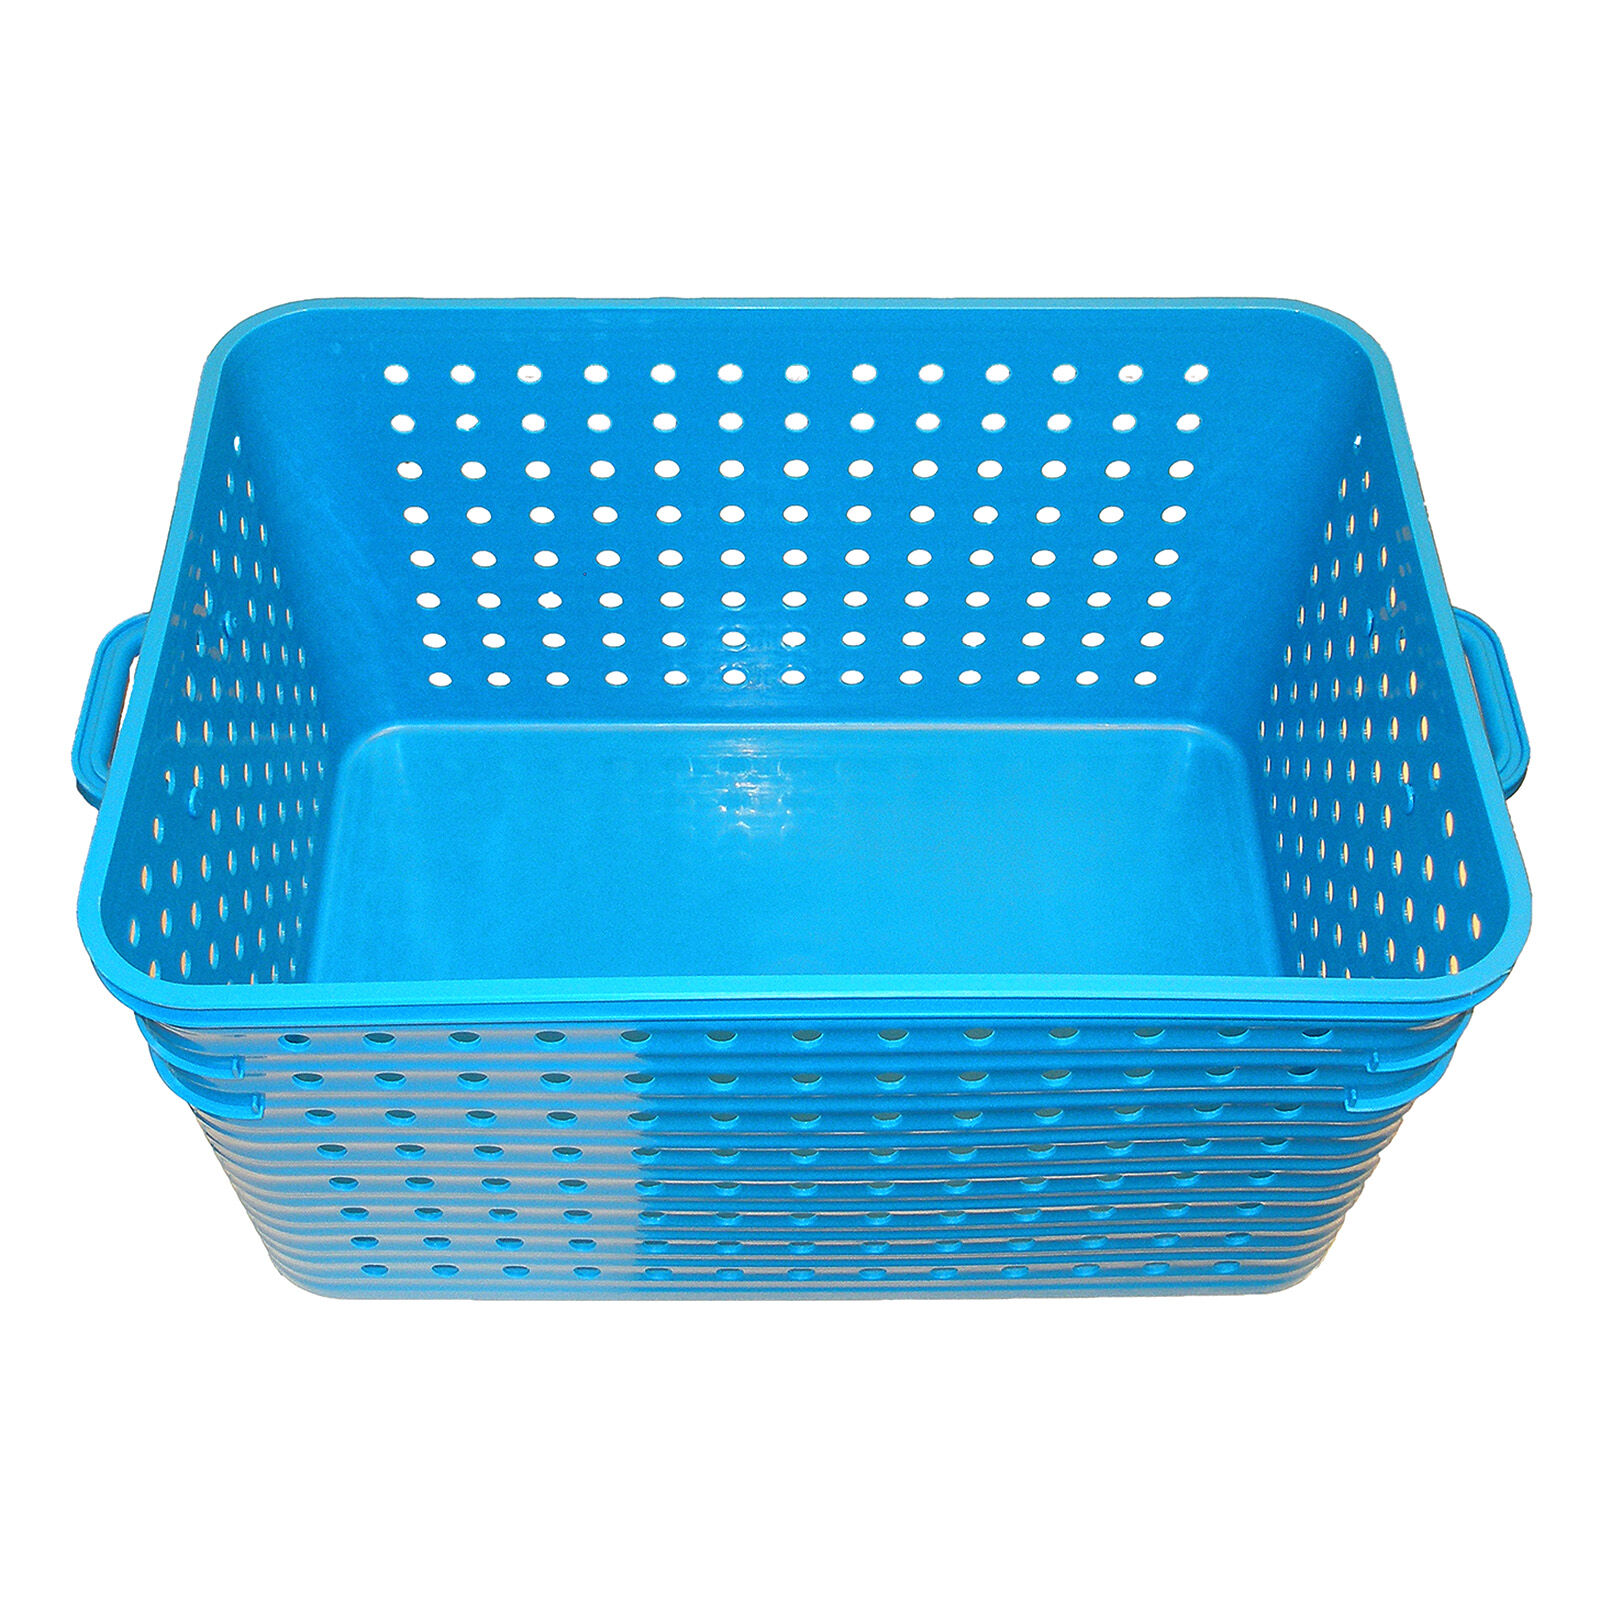 Large 2 Handle Basket Blue At Home